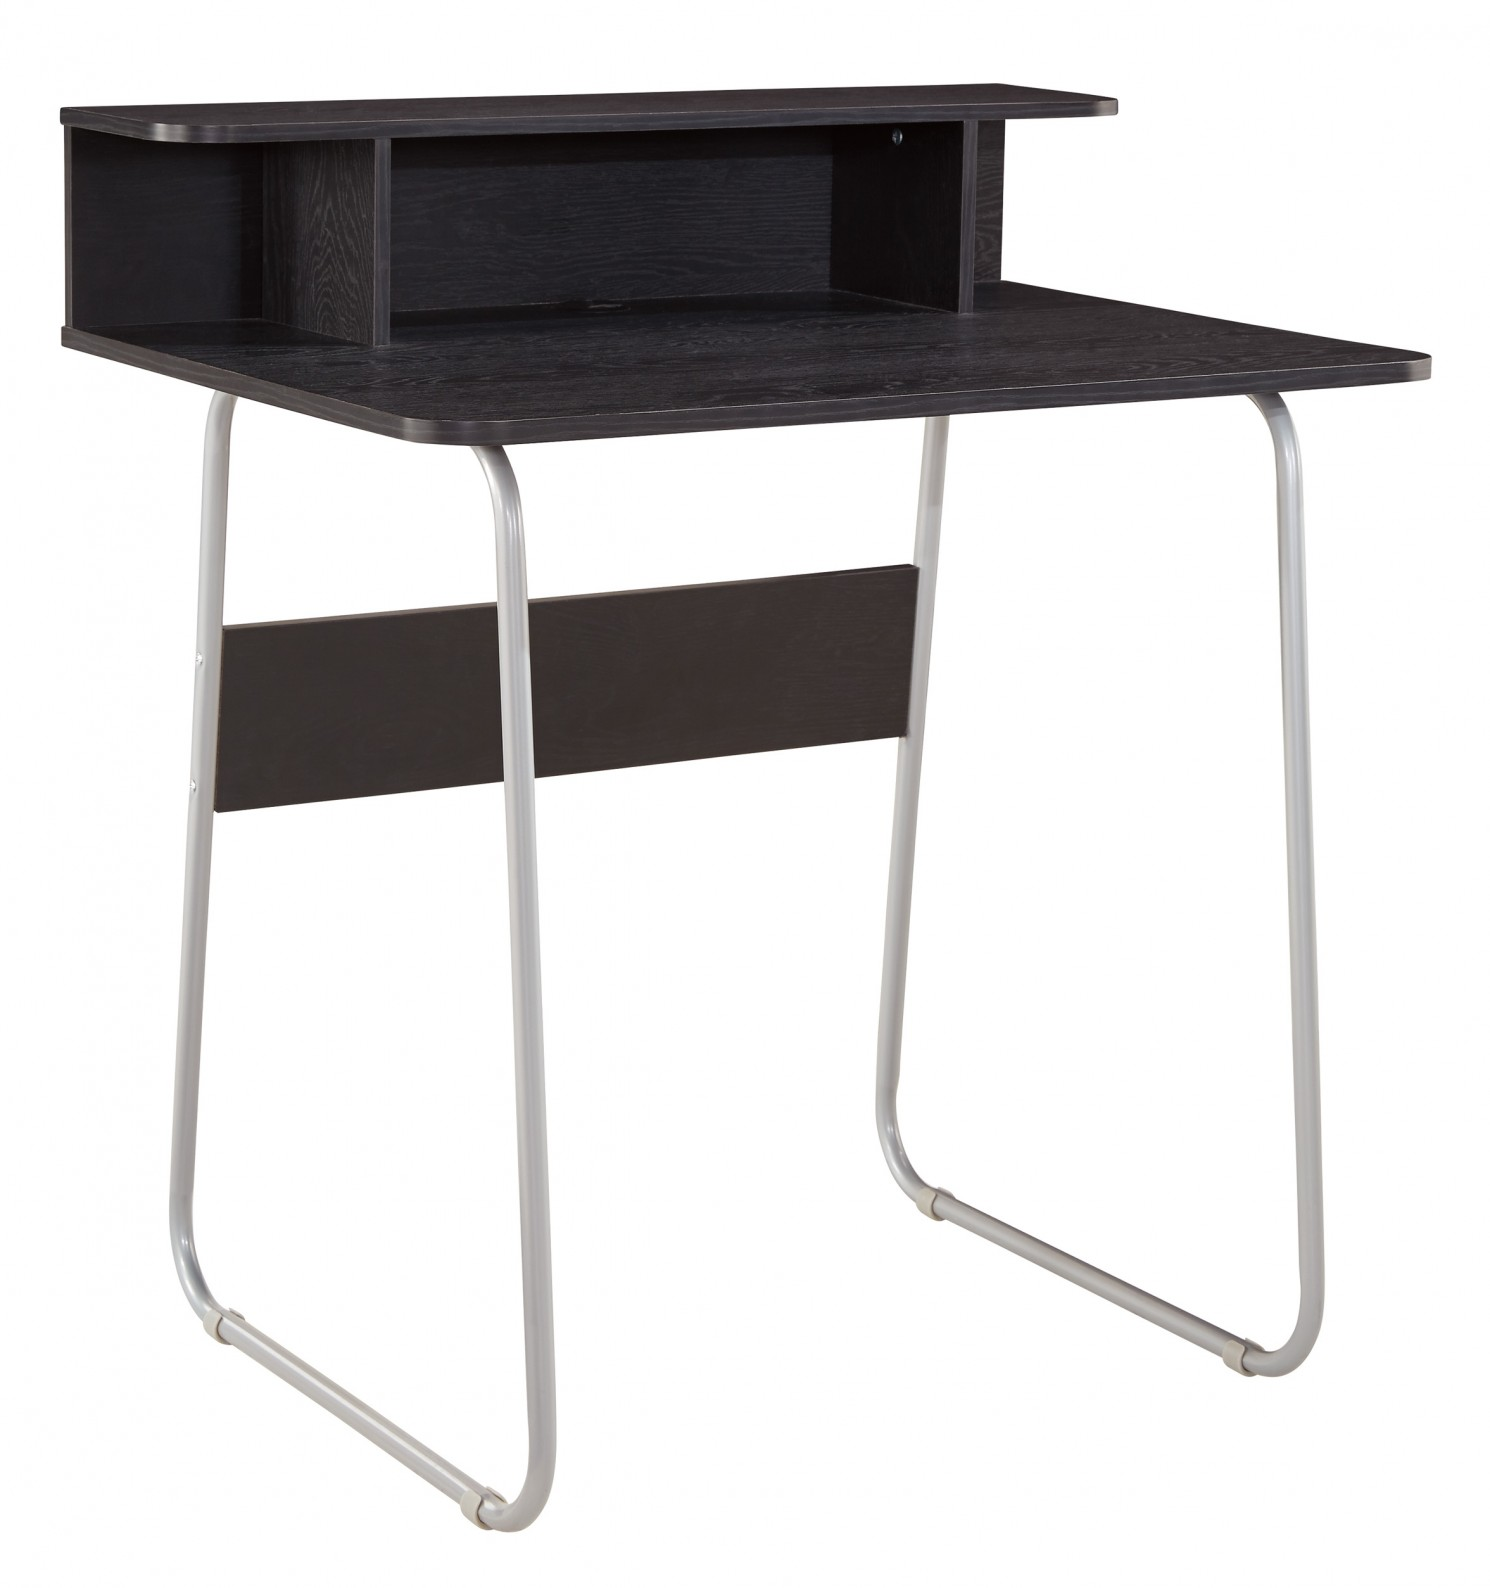 Ashley Ploviny Home Office Desk in Dark Brown - Walmart.com